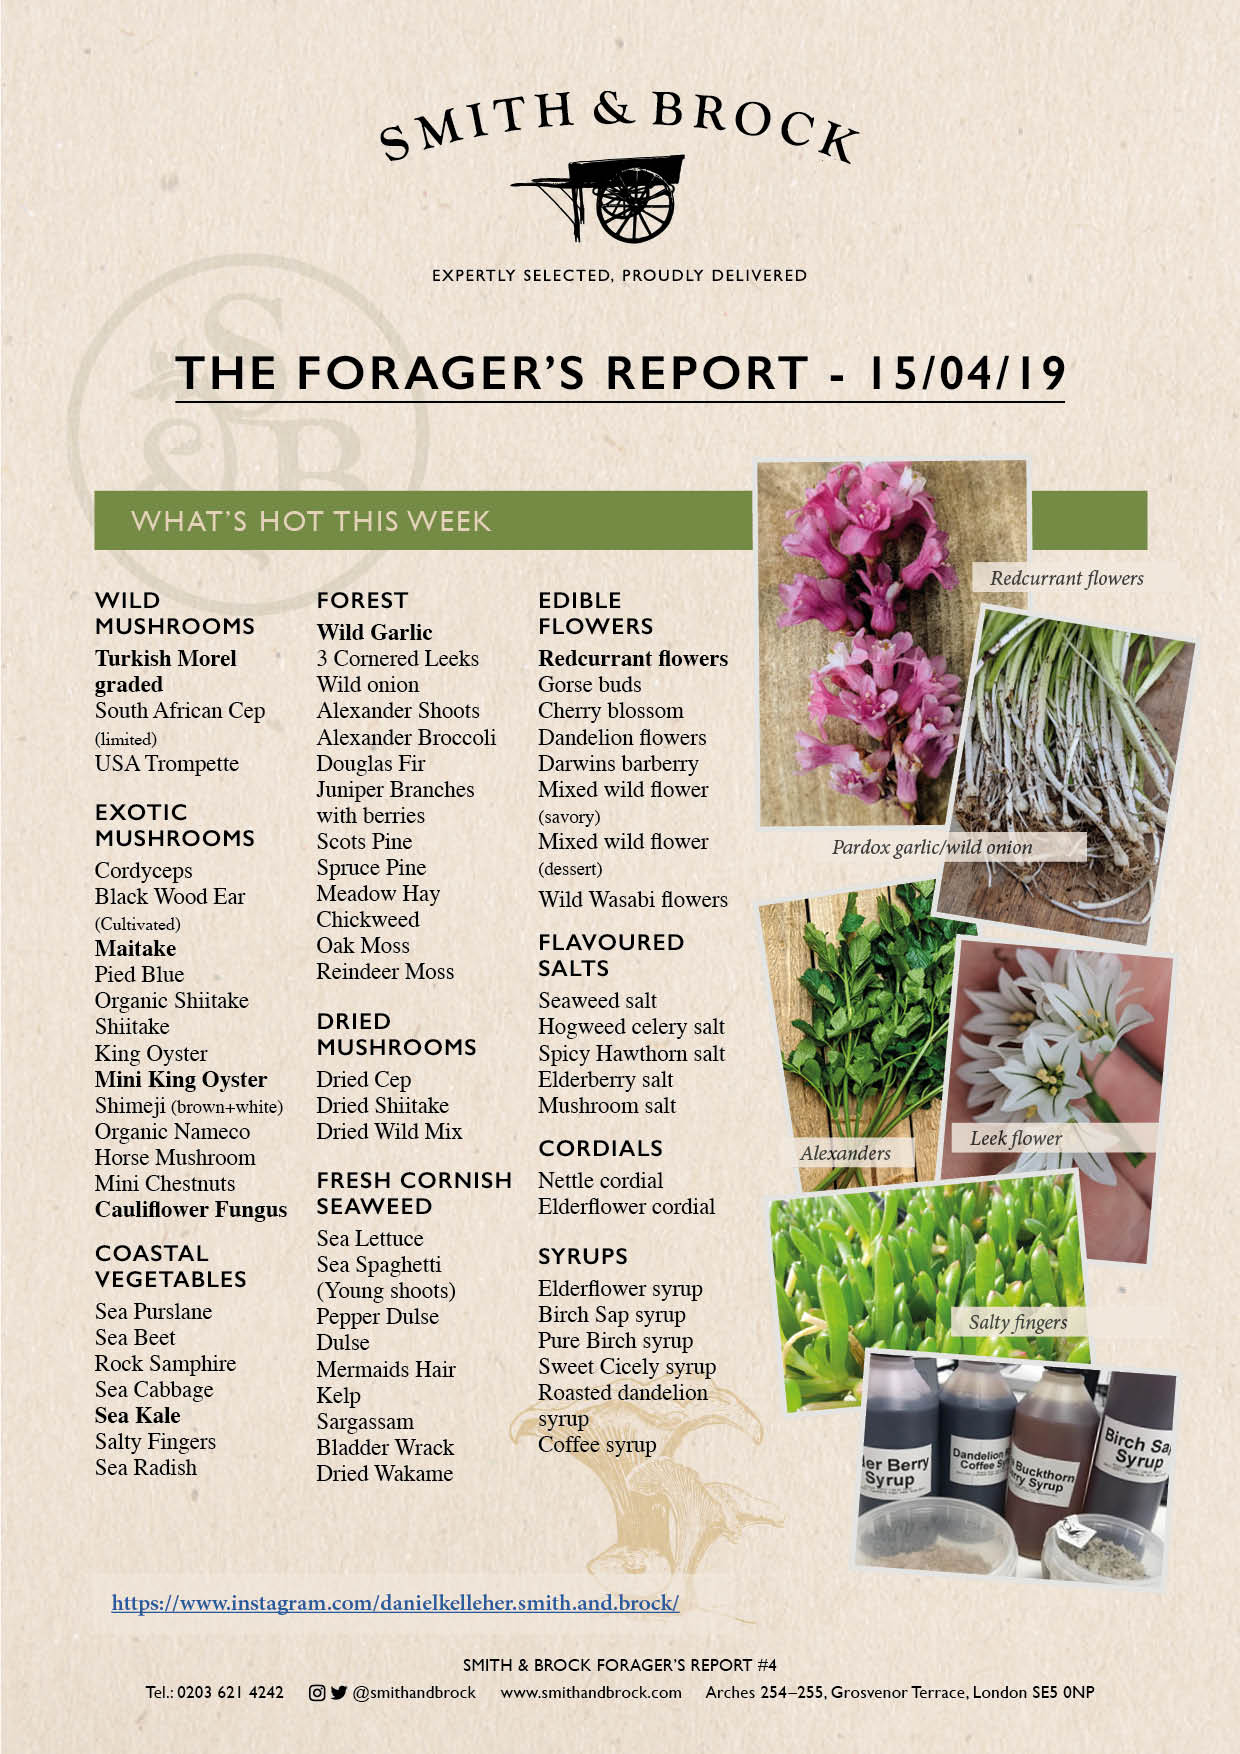 Smith&Brock Foraged Products Report 15 Apr 2019 4